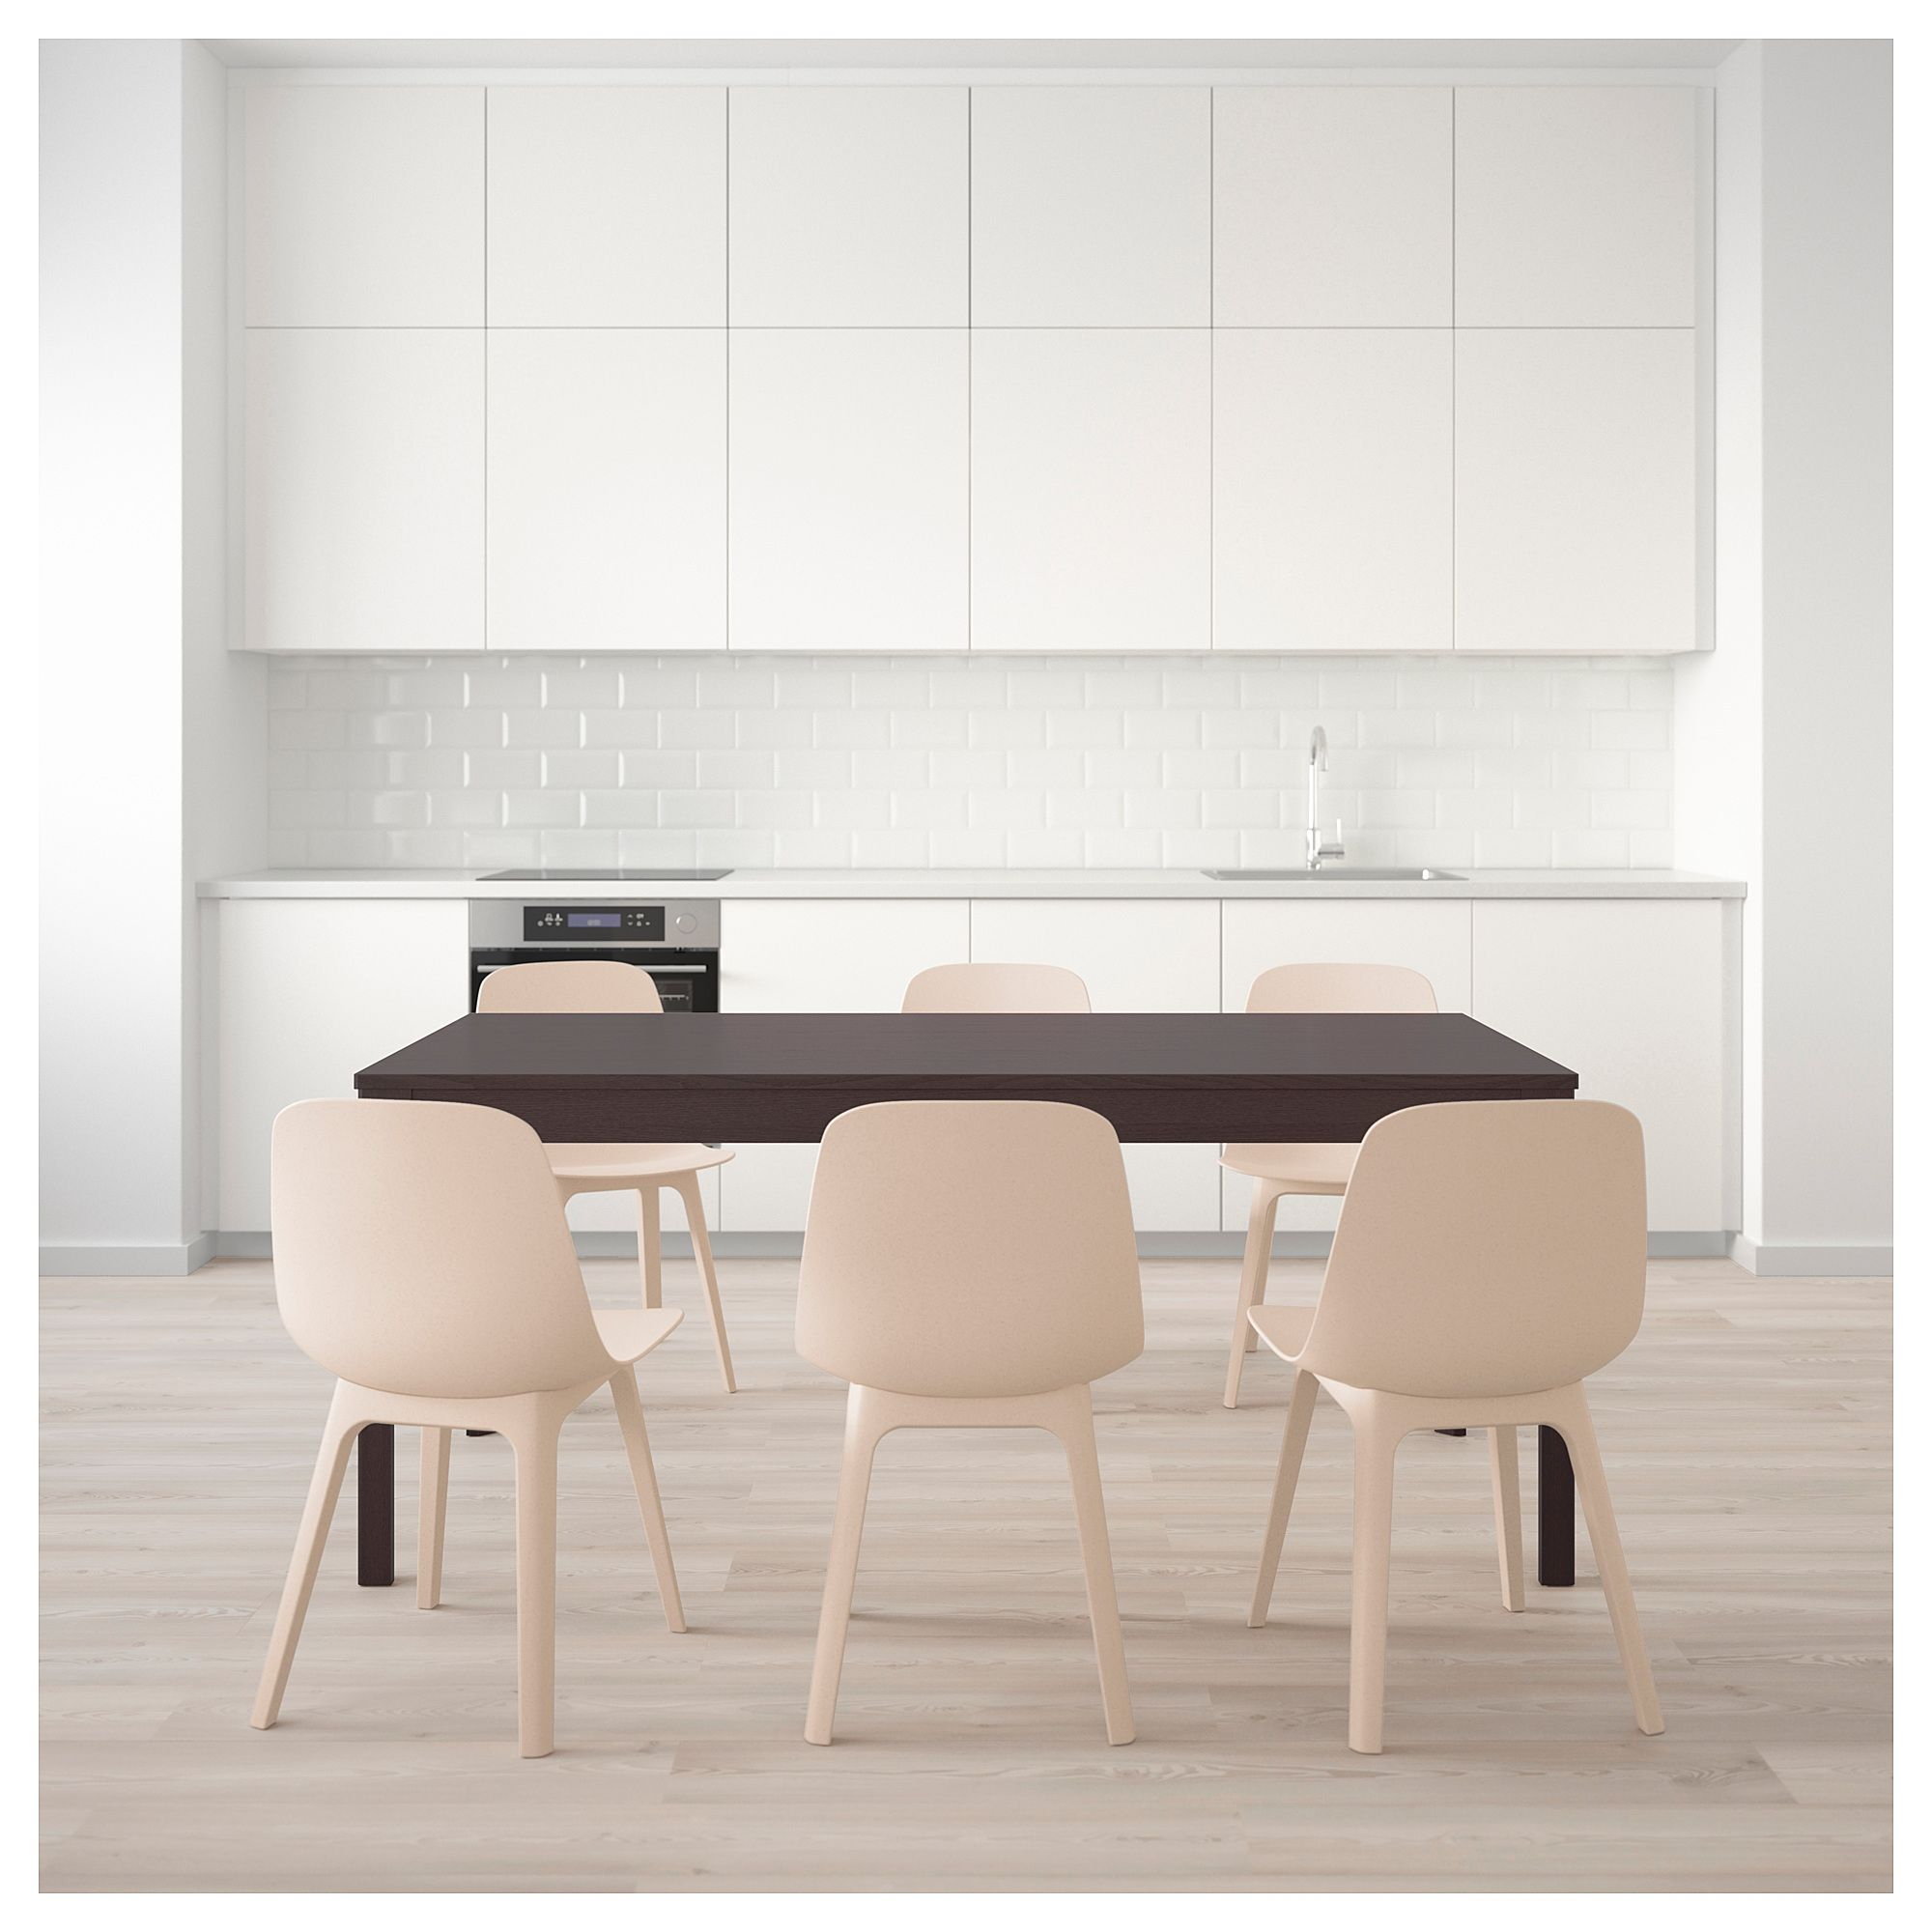 ikea ekedalen odger table and chairs dark brown white beige with ikea ladenblok. Black Bedroom Furniture Sets. Home Design Ideas